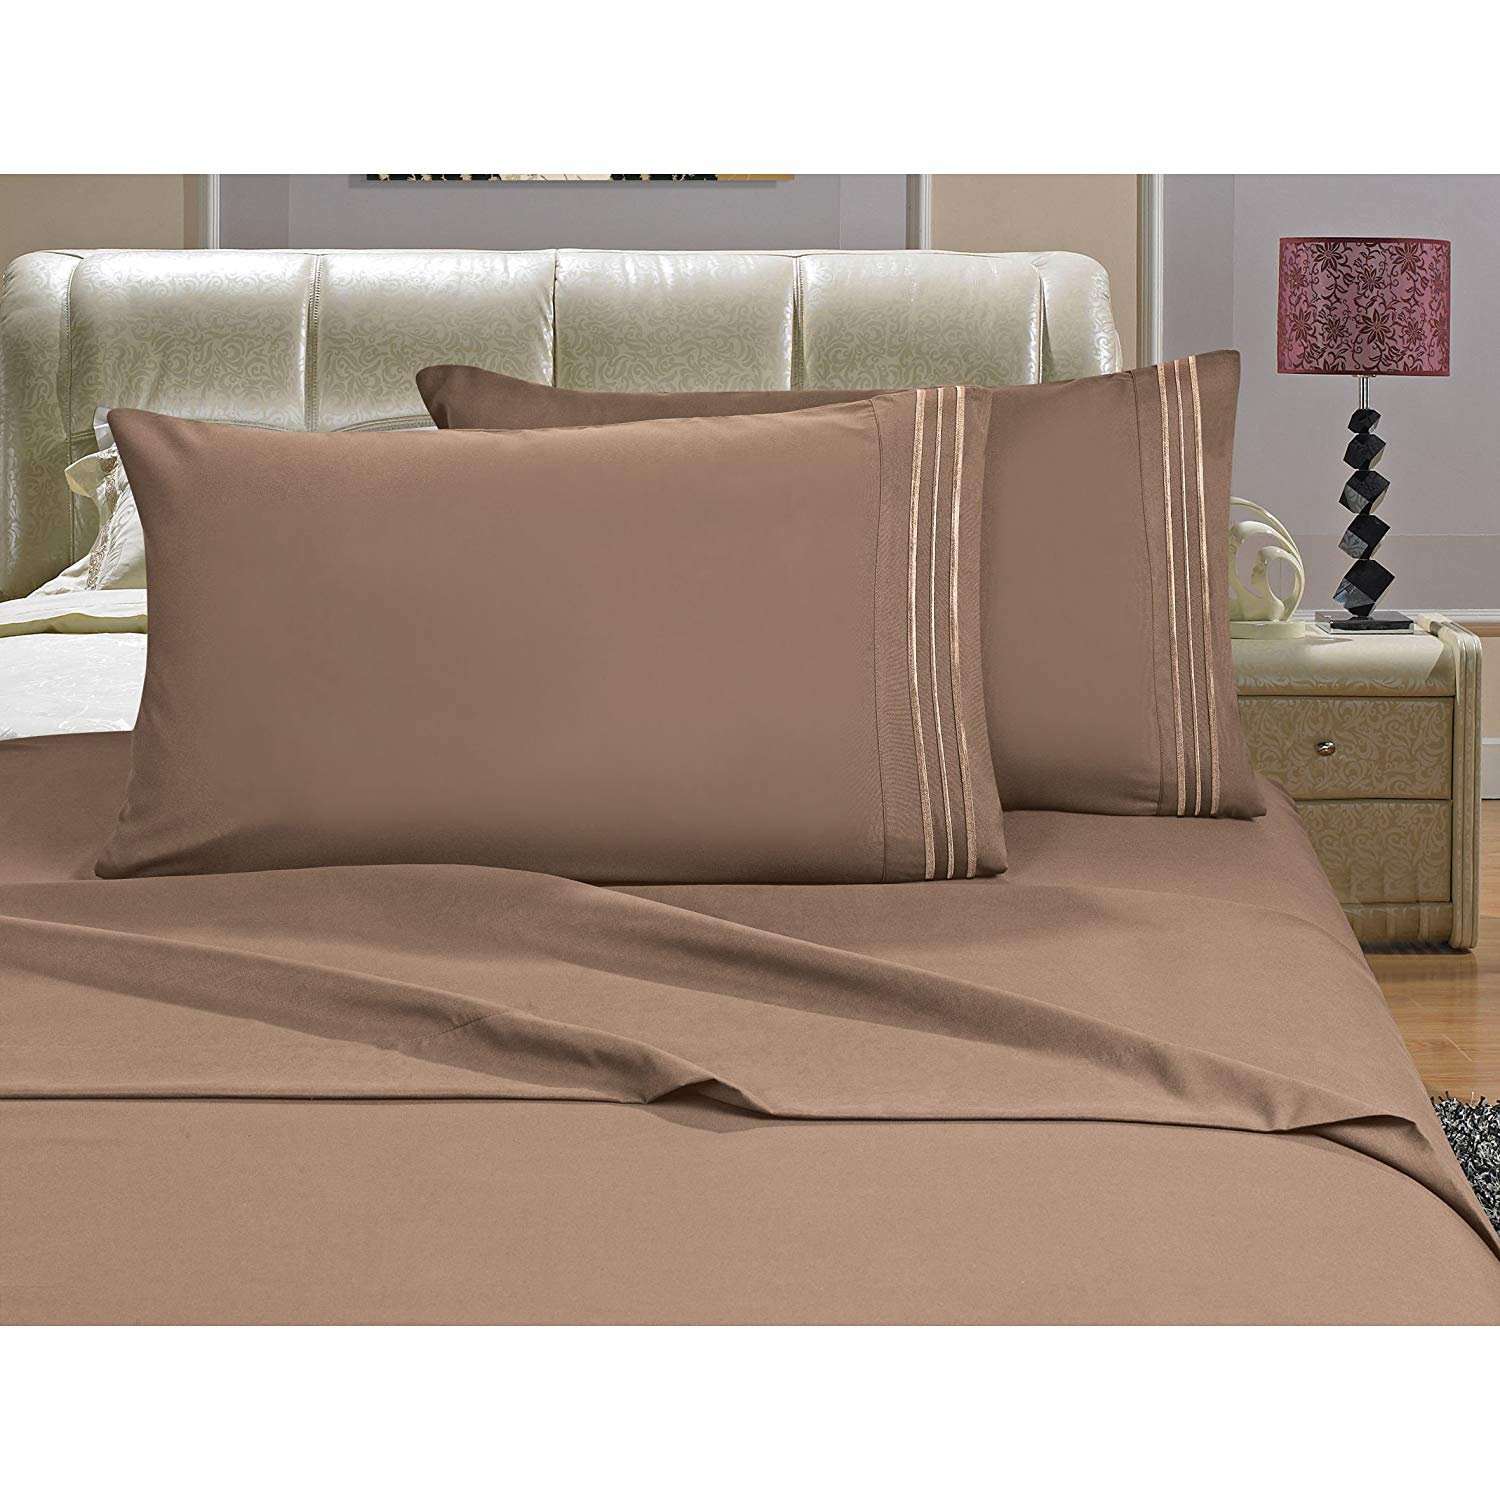 OSK 4 Piece Girls Taupe Brown Embroidered Stripe Sheet Full Set, Light Brown Color Solid Pattern Design Kids Bedding, Luxurious Colorful Traditional Teen Themed, Polyester Microfiber